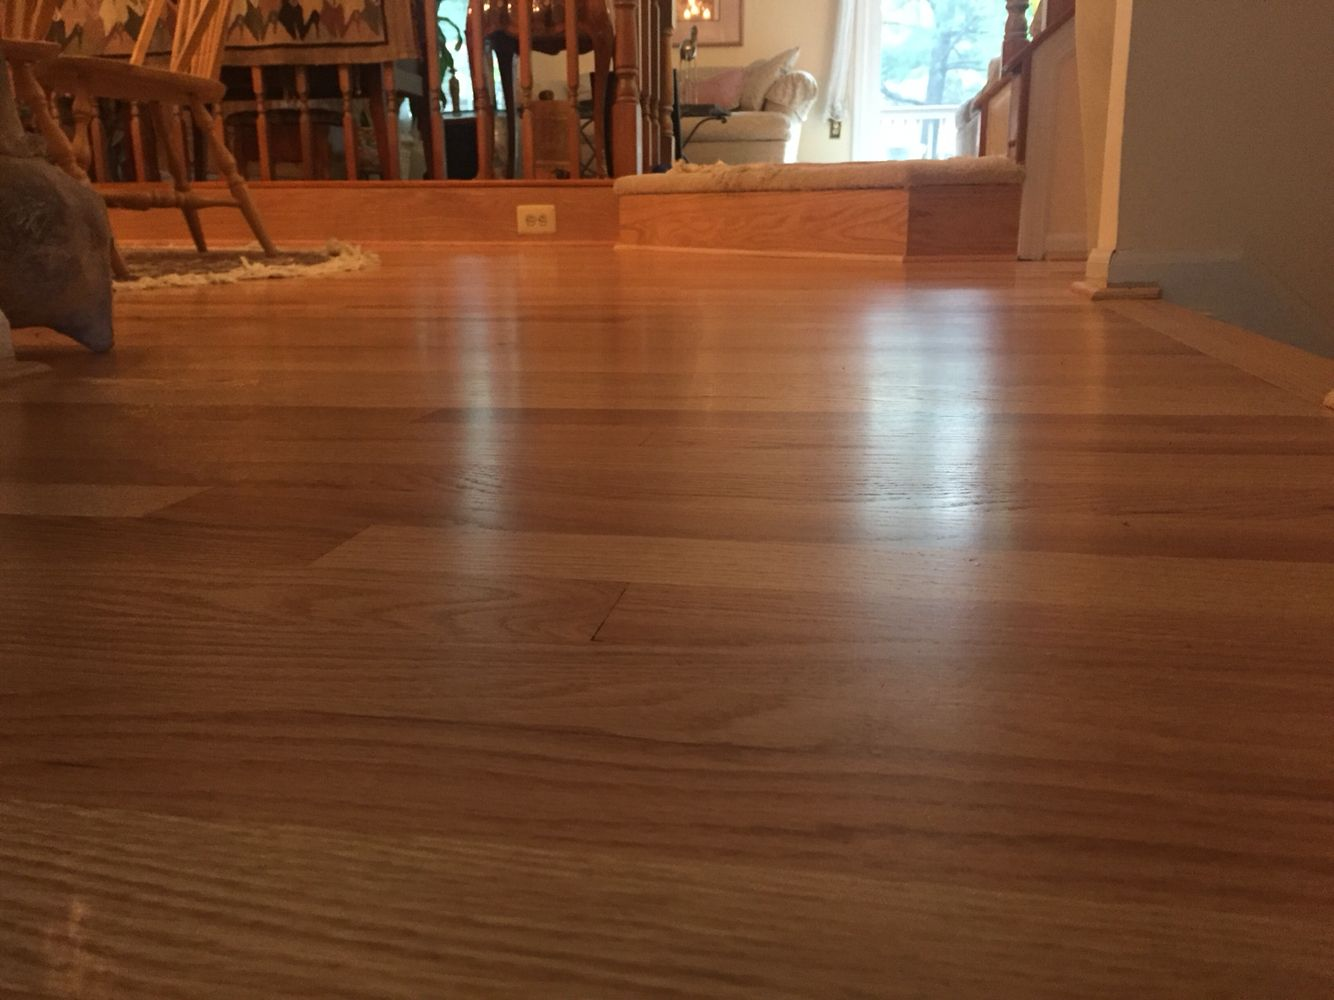 Refinishes red oak flooring with natural pallmann x color for Natural red oak floors